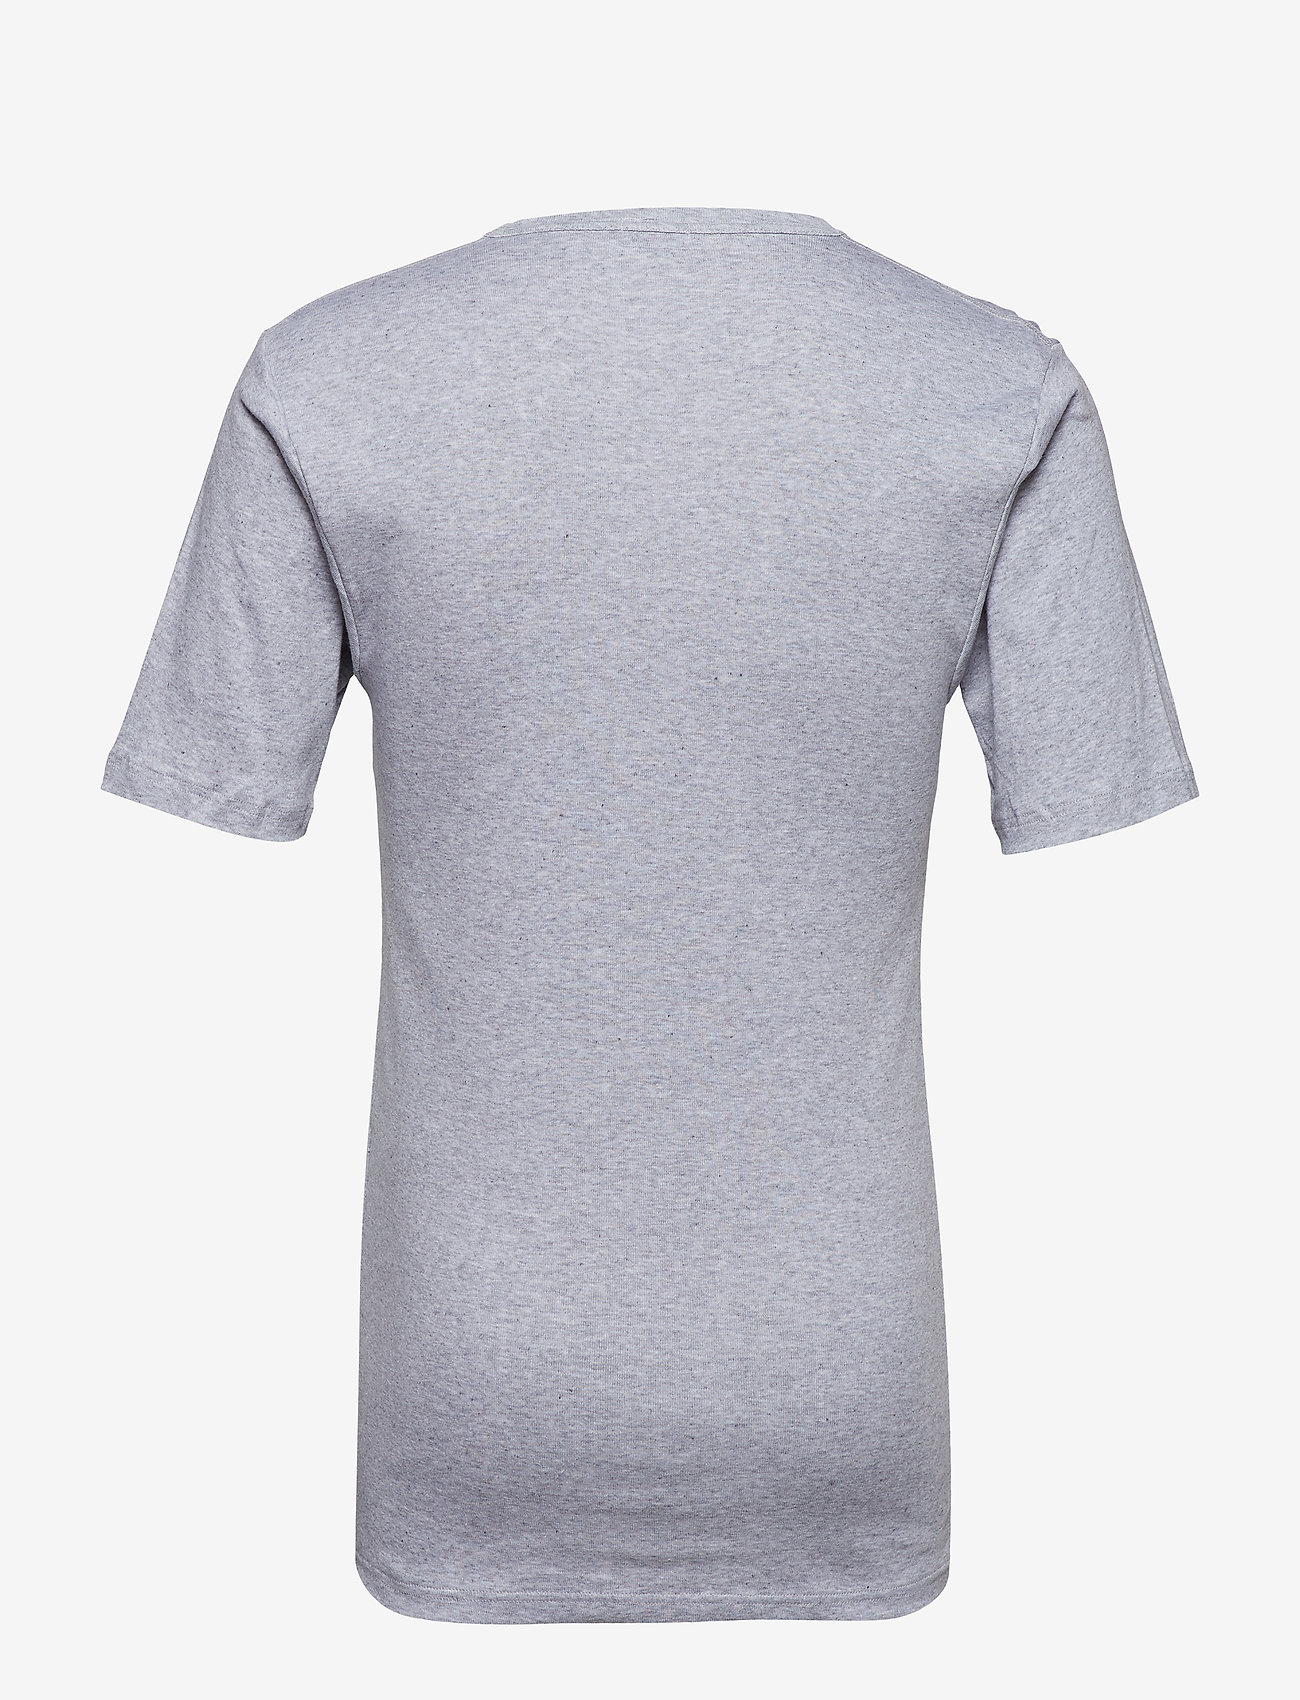 JBS - JBS t-shirt original - basic t-shirts - grey mel - 1